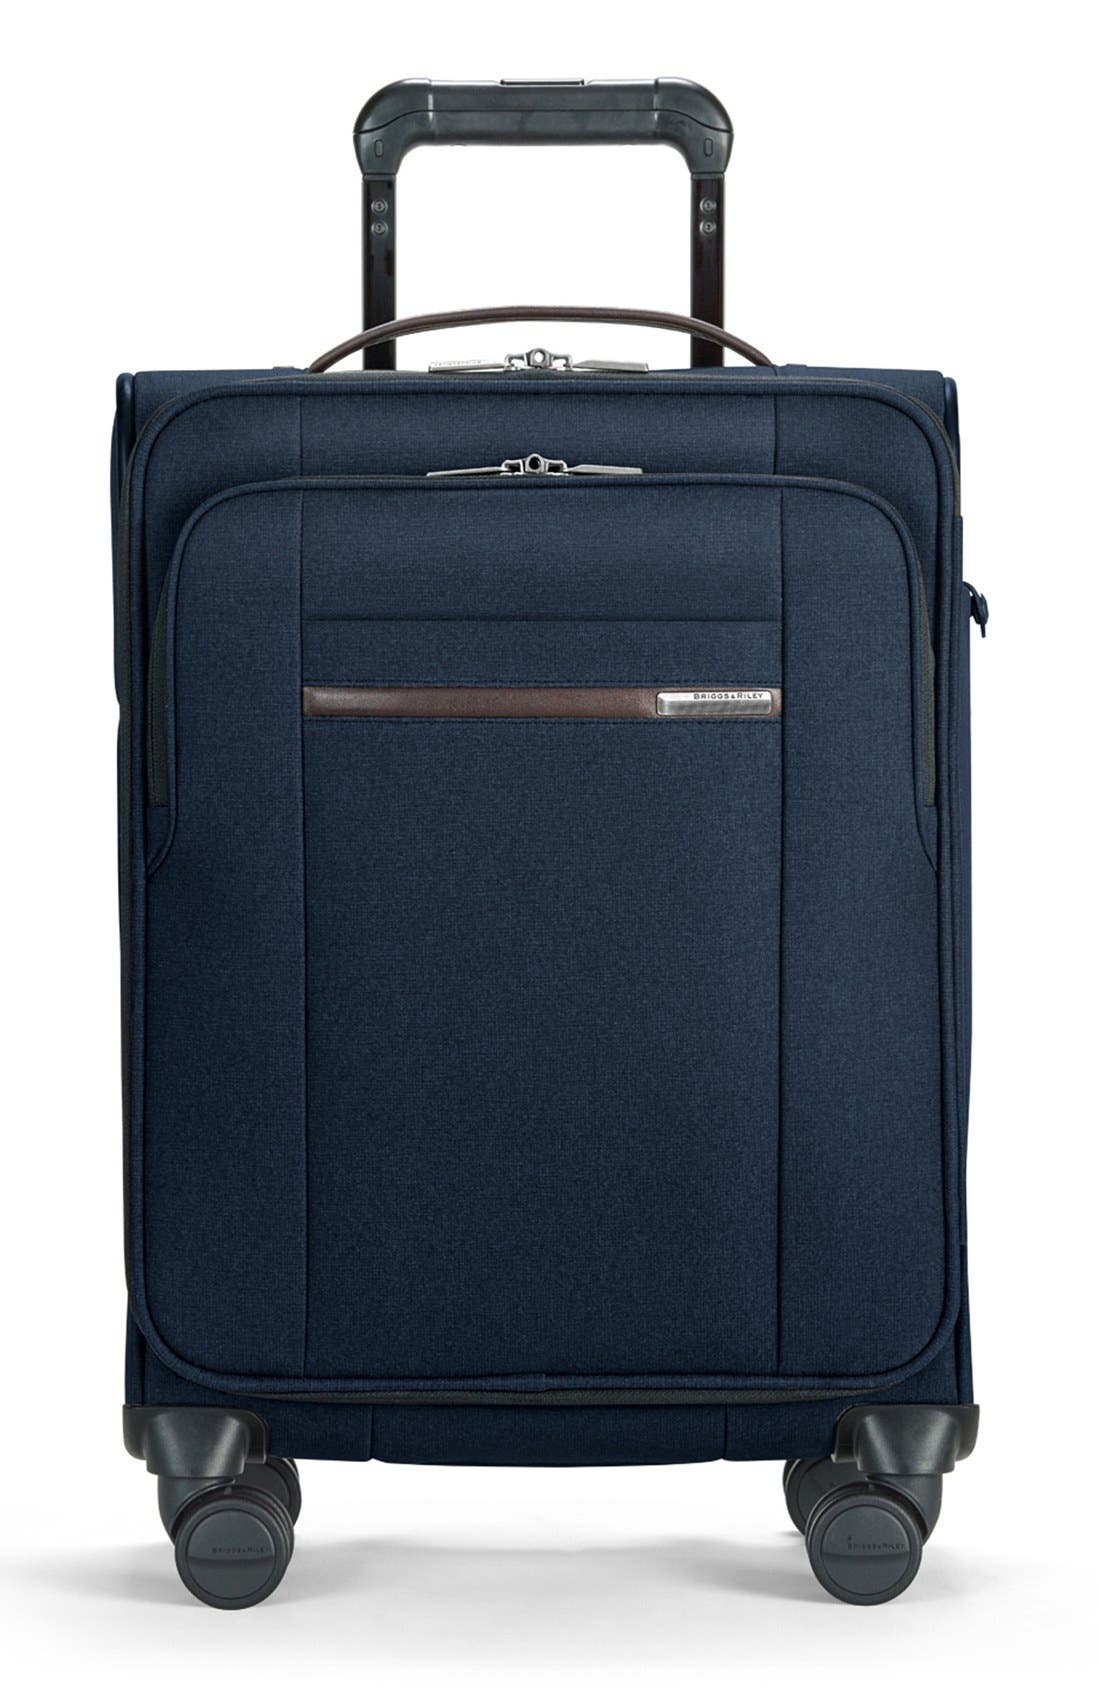 BRIGGS & RILEY 'Kinzie Street' International Wheeled Carry-On